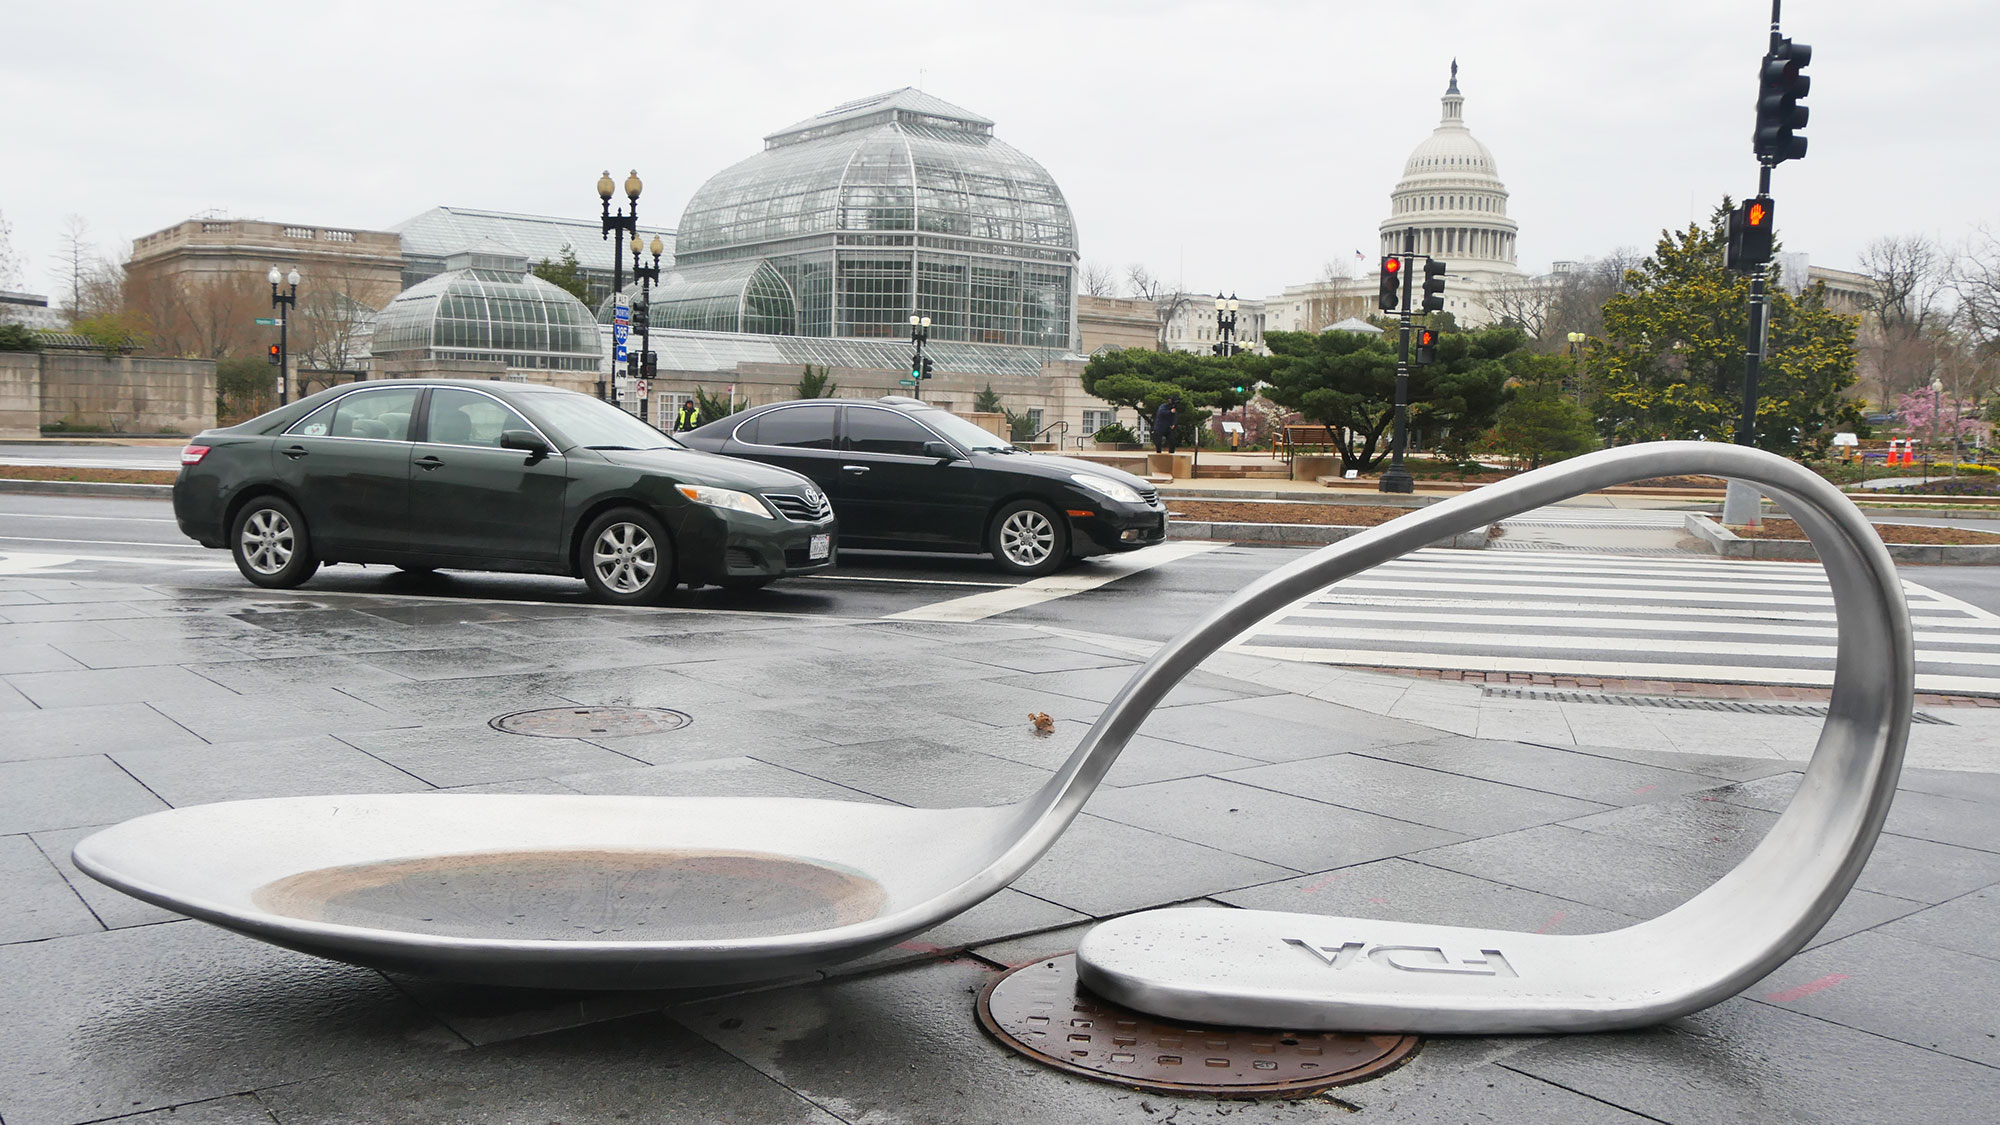 Domenic Esposito's FDA Spoon sculpture displayed on a sidewalk in Washington D.C.